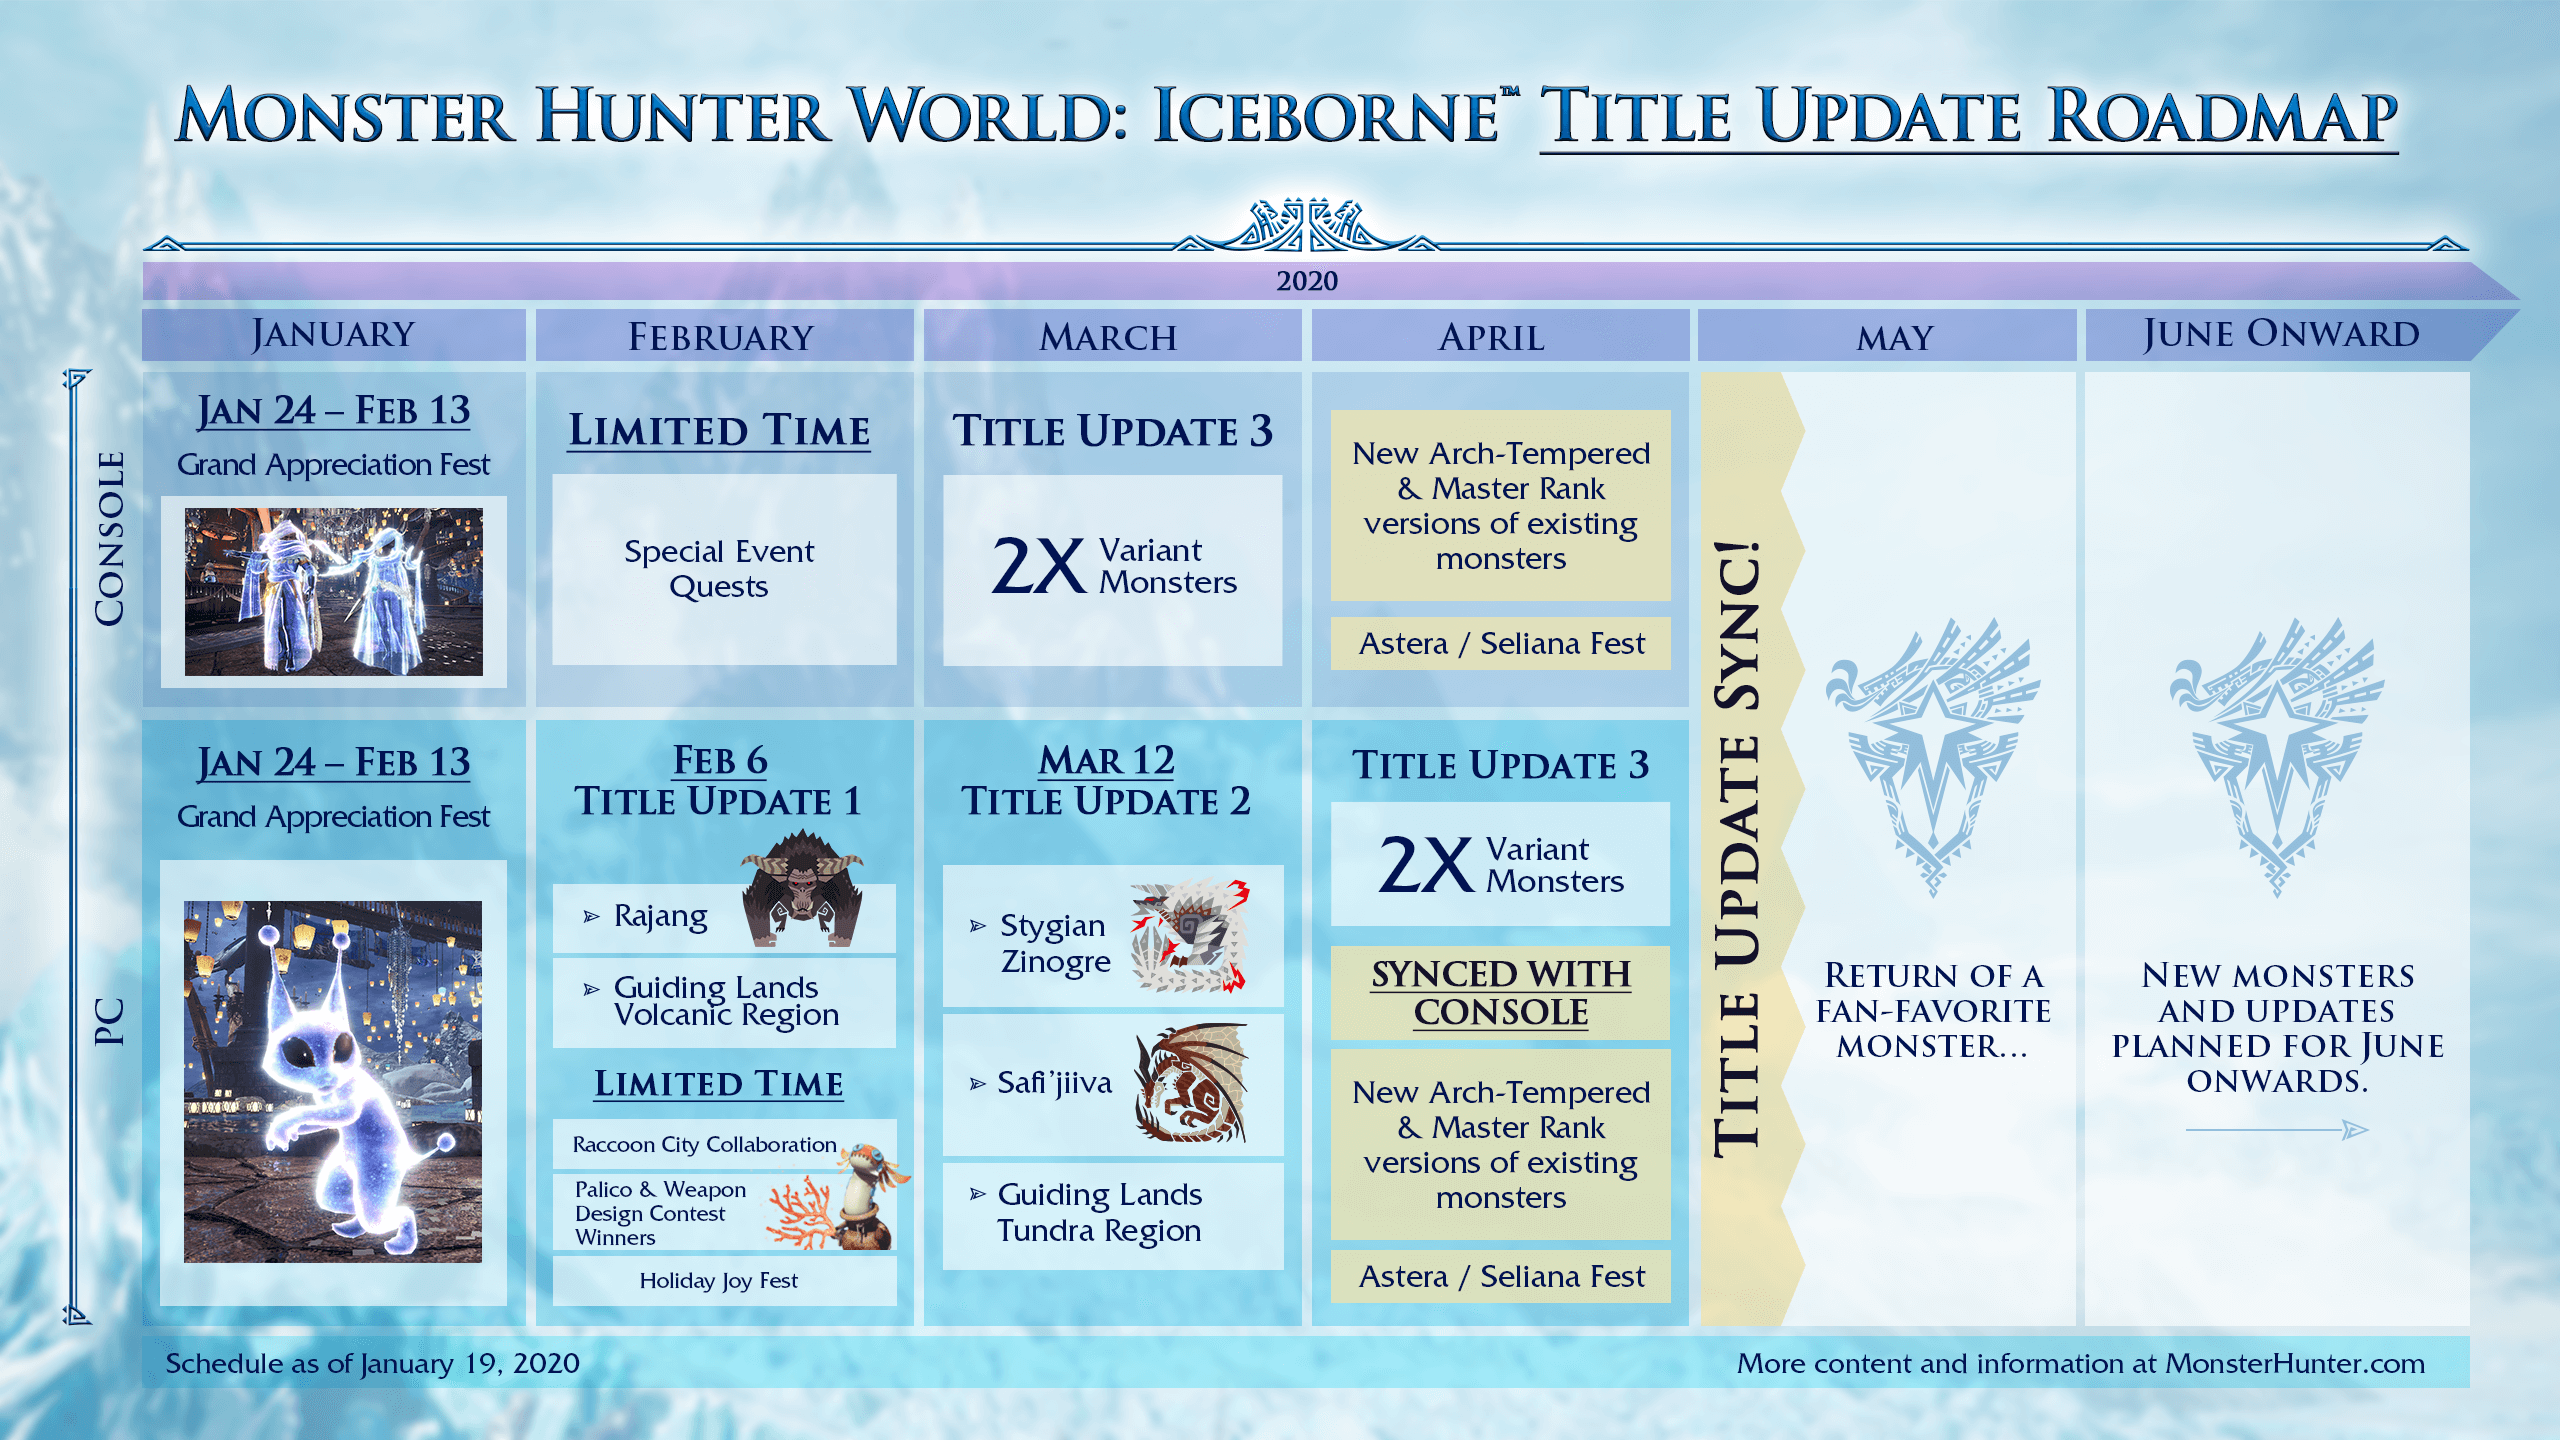 monster hunter world iceborne roadmap update